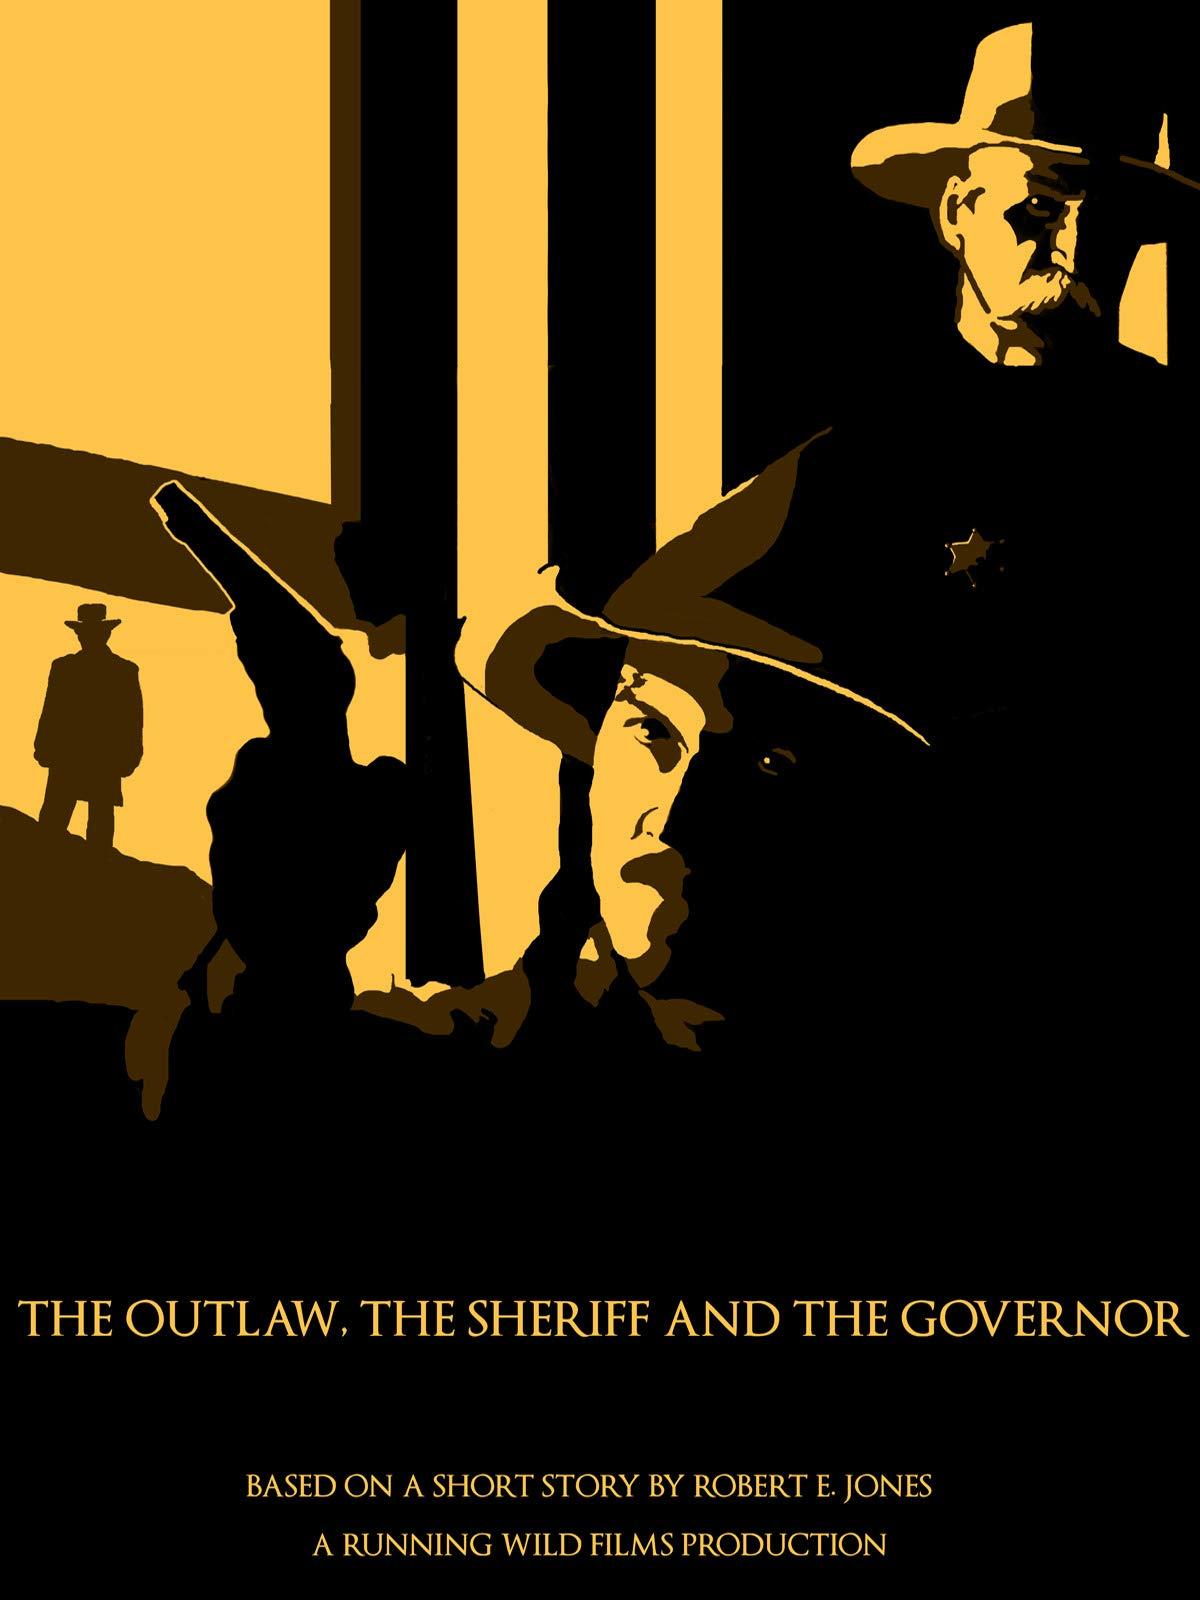 The Outlaw, the Sheriff and the Governor